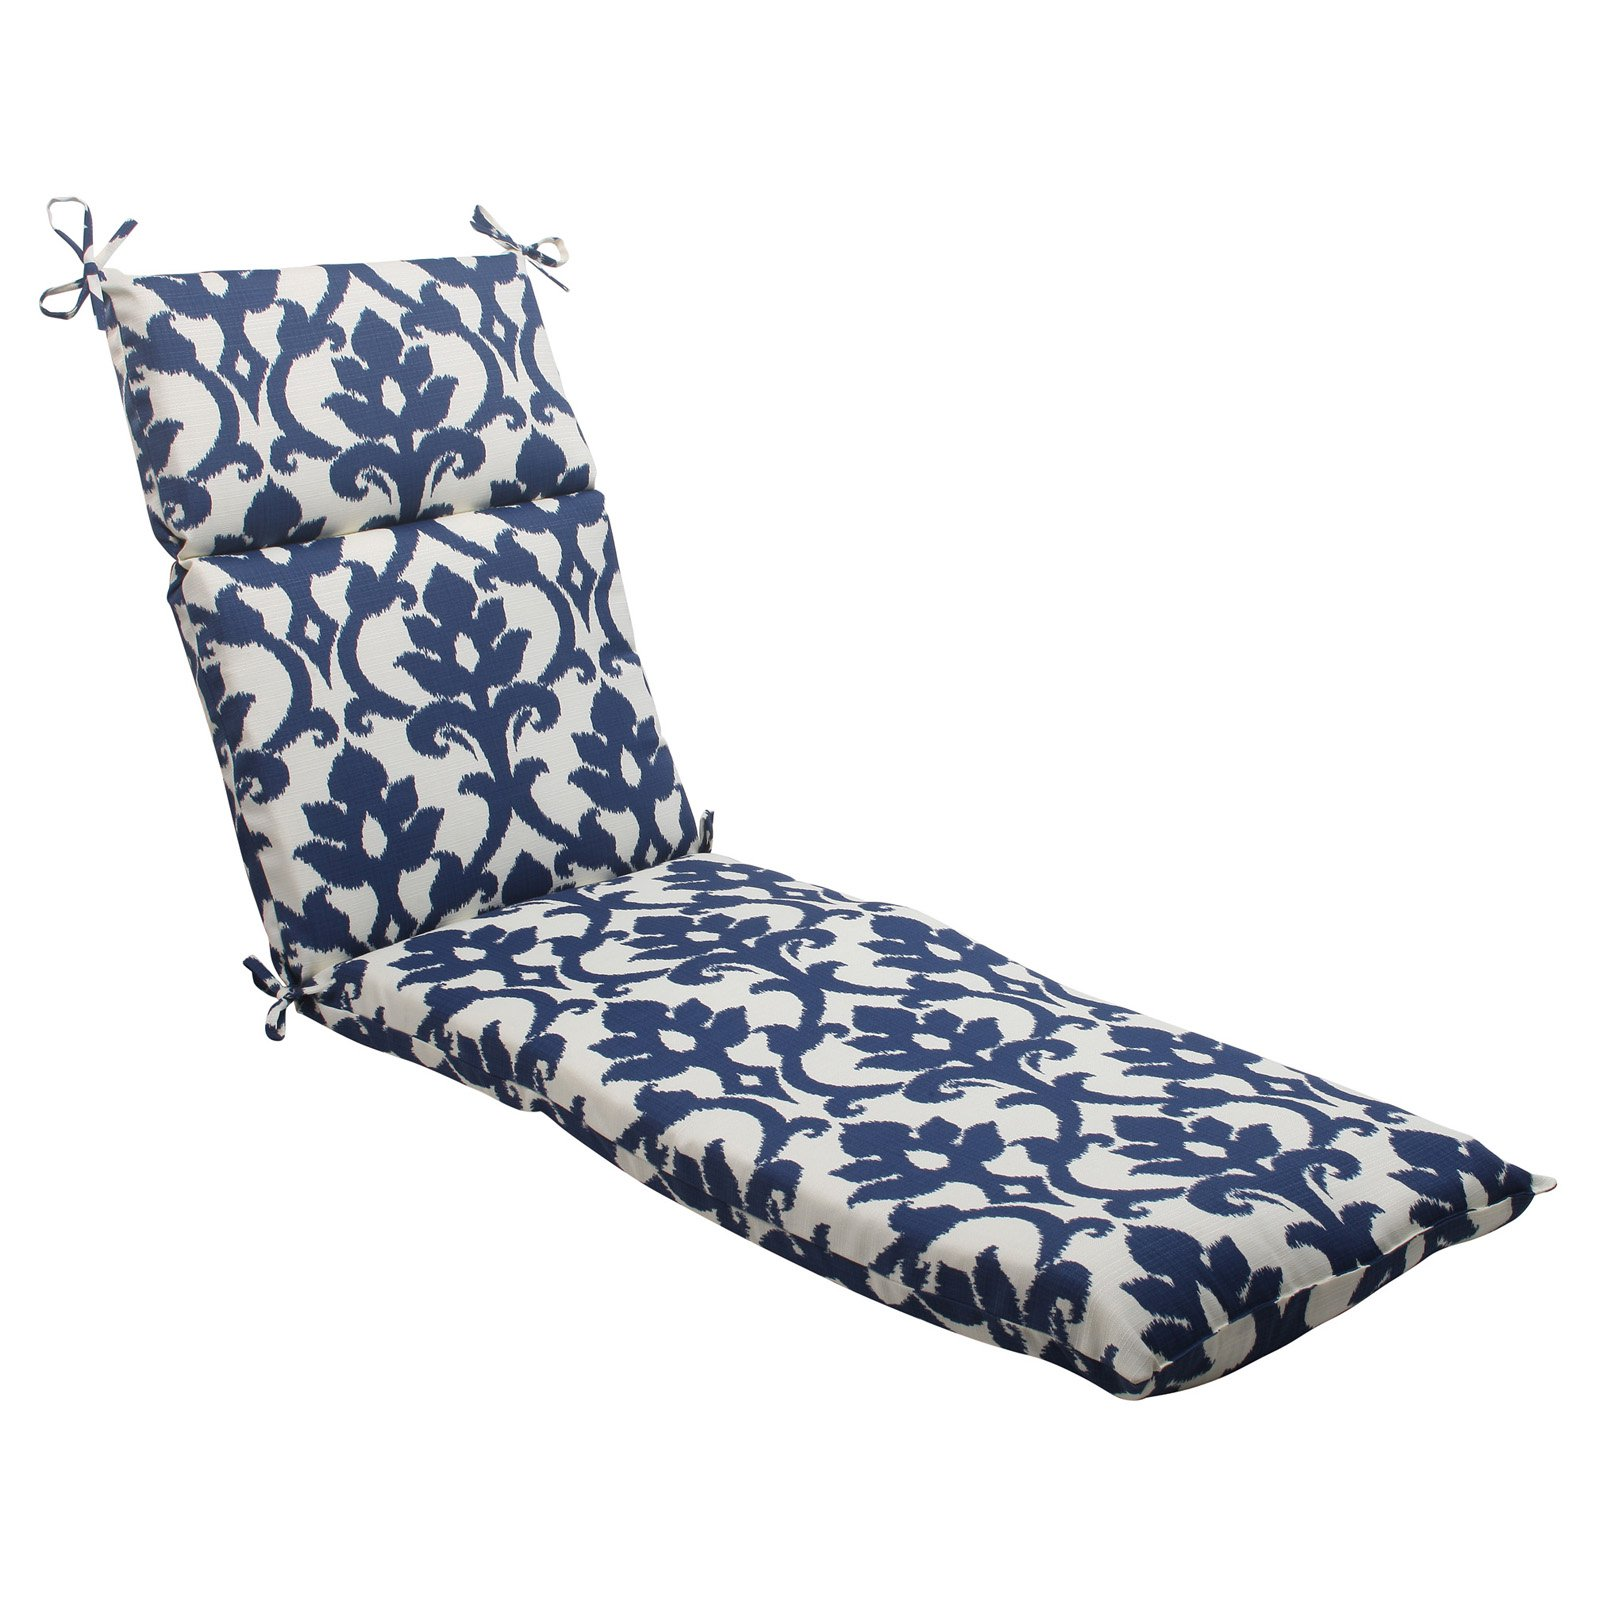 Pillow Perfect Outdoor/ Indoor Bosco Navy Chaise Lounge Cushion